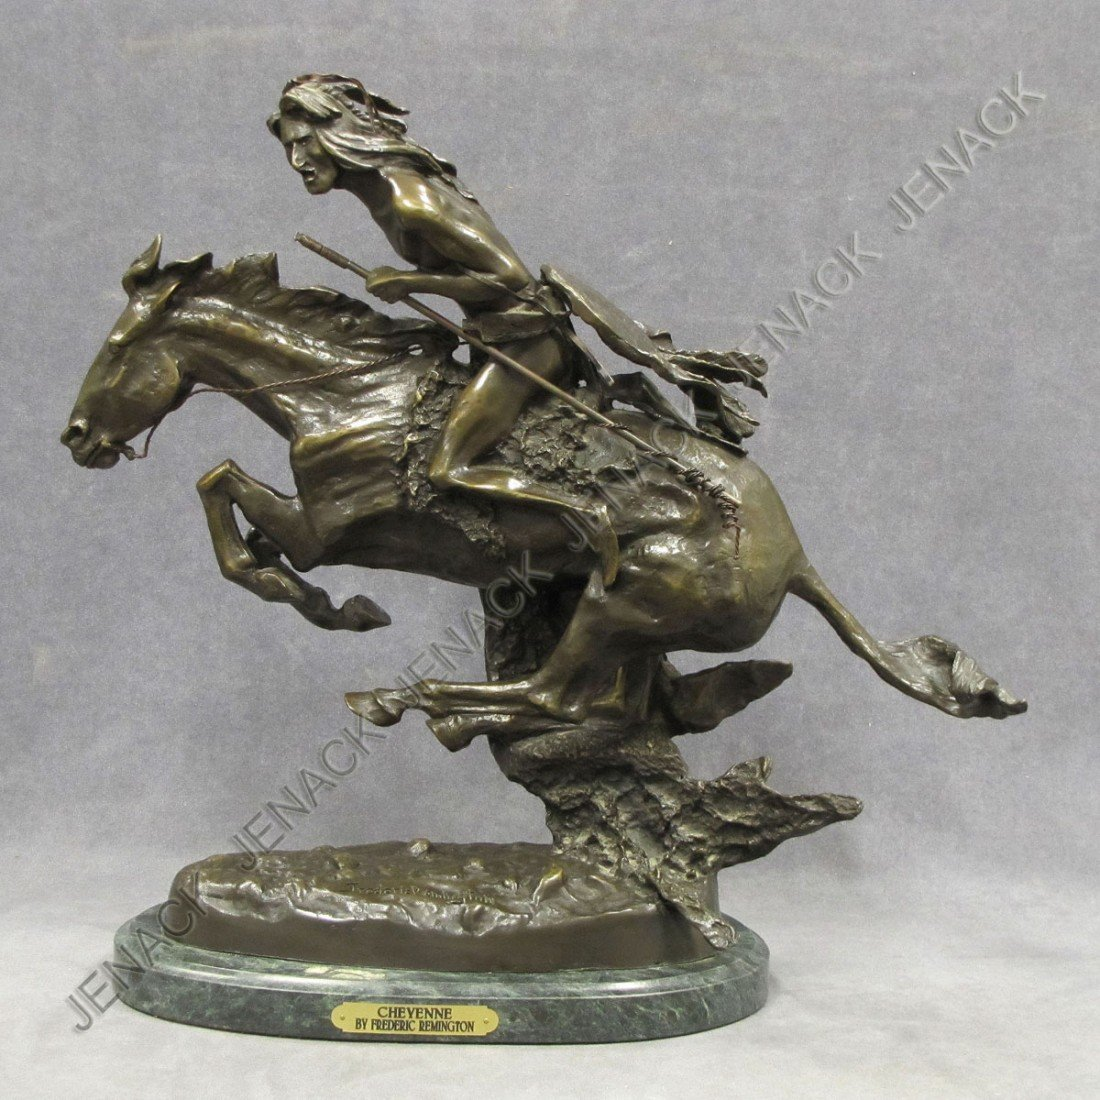 """108: AFTER FREDERIC REMINGTON, BRONZE, """"CHEYENNE"""", SIGN"""